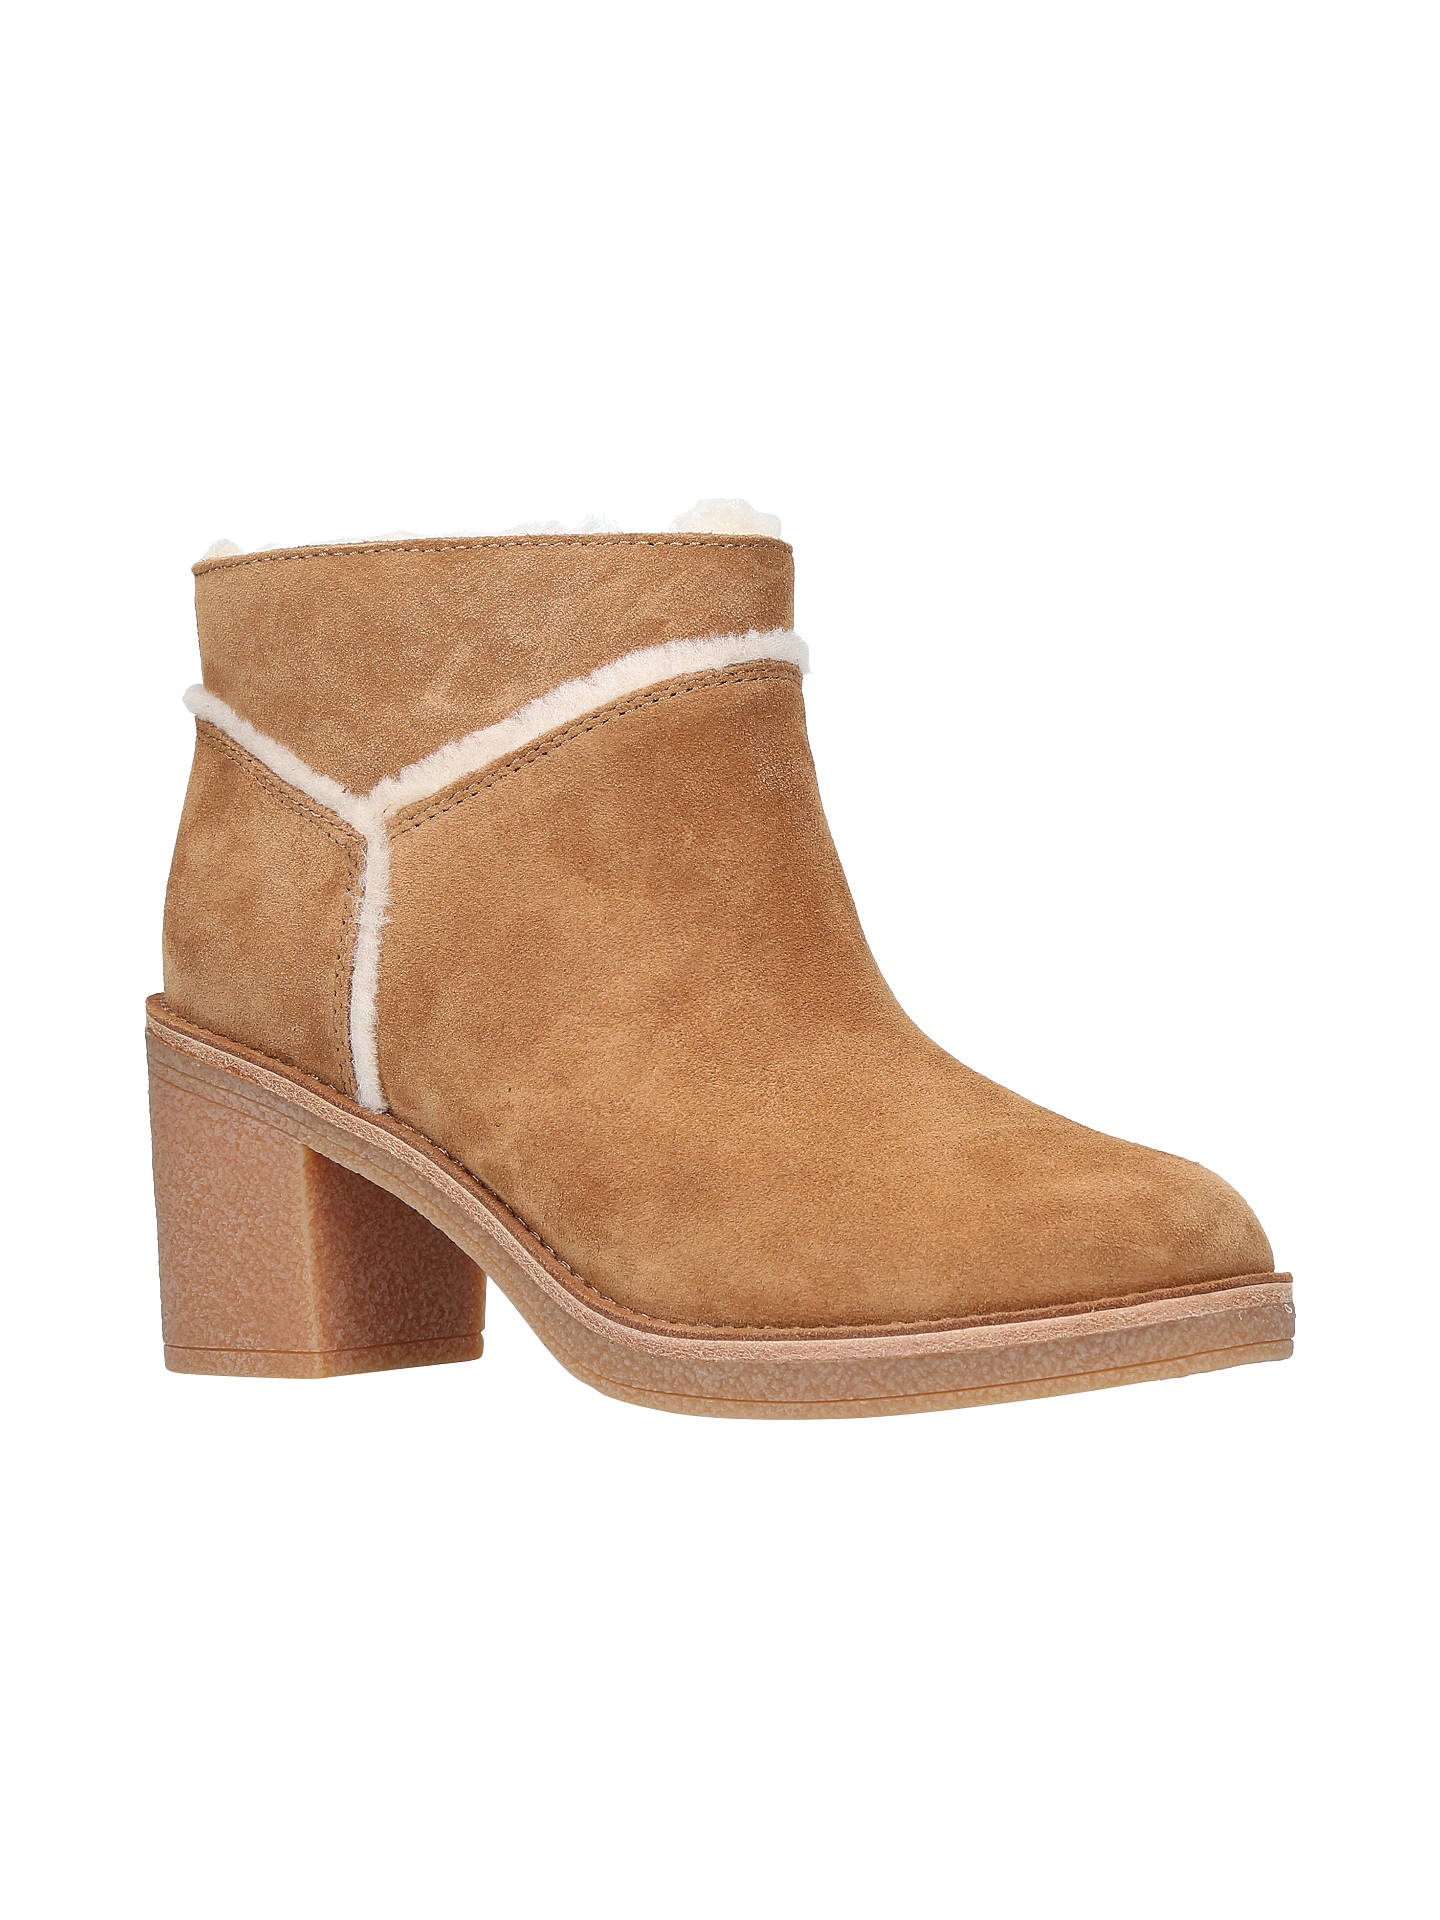 f9ce2ce409 UGG Kasen Ankle Boots at John Lewis   Partners